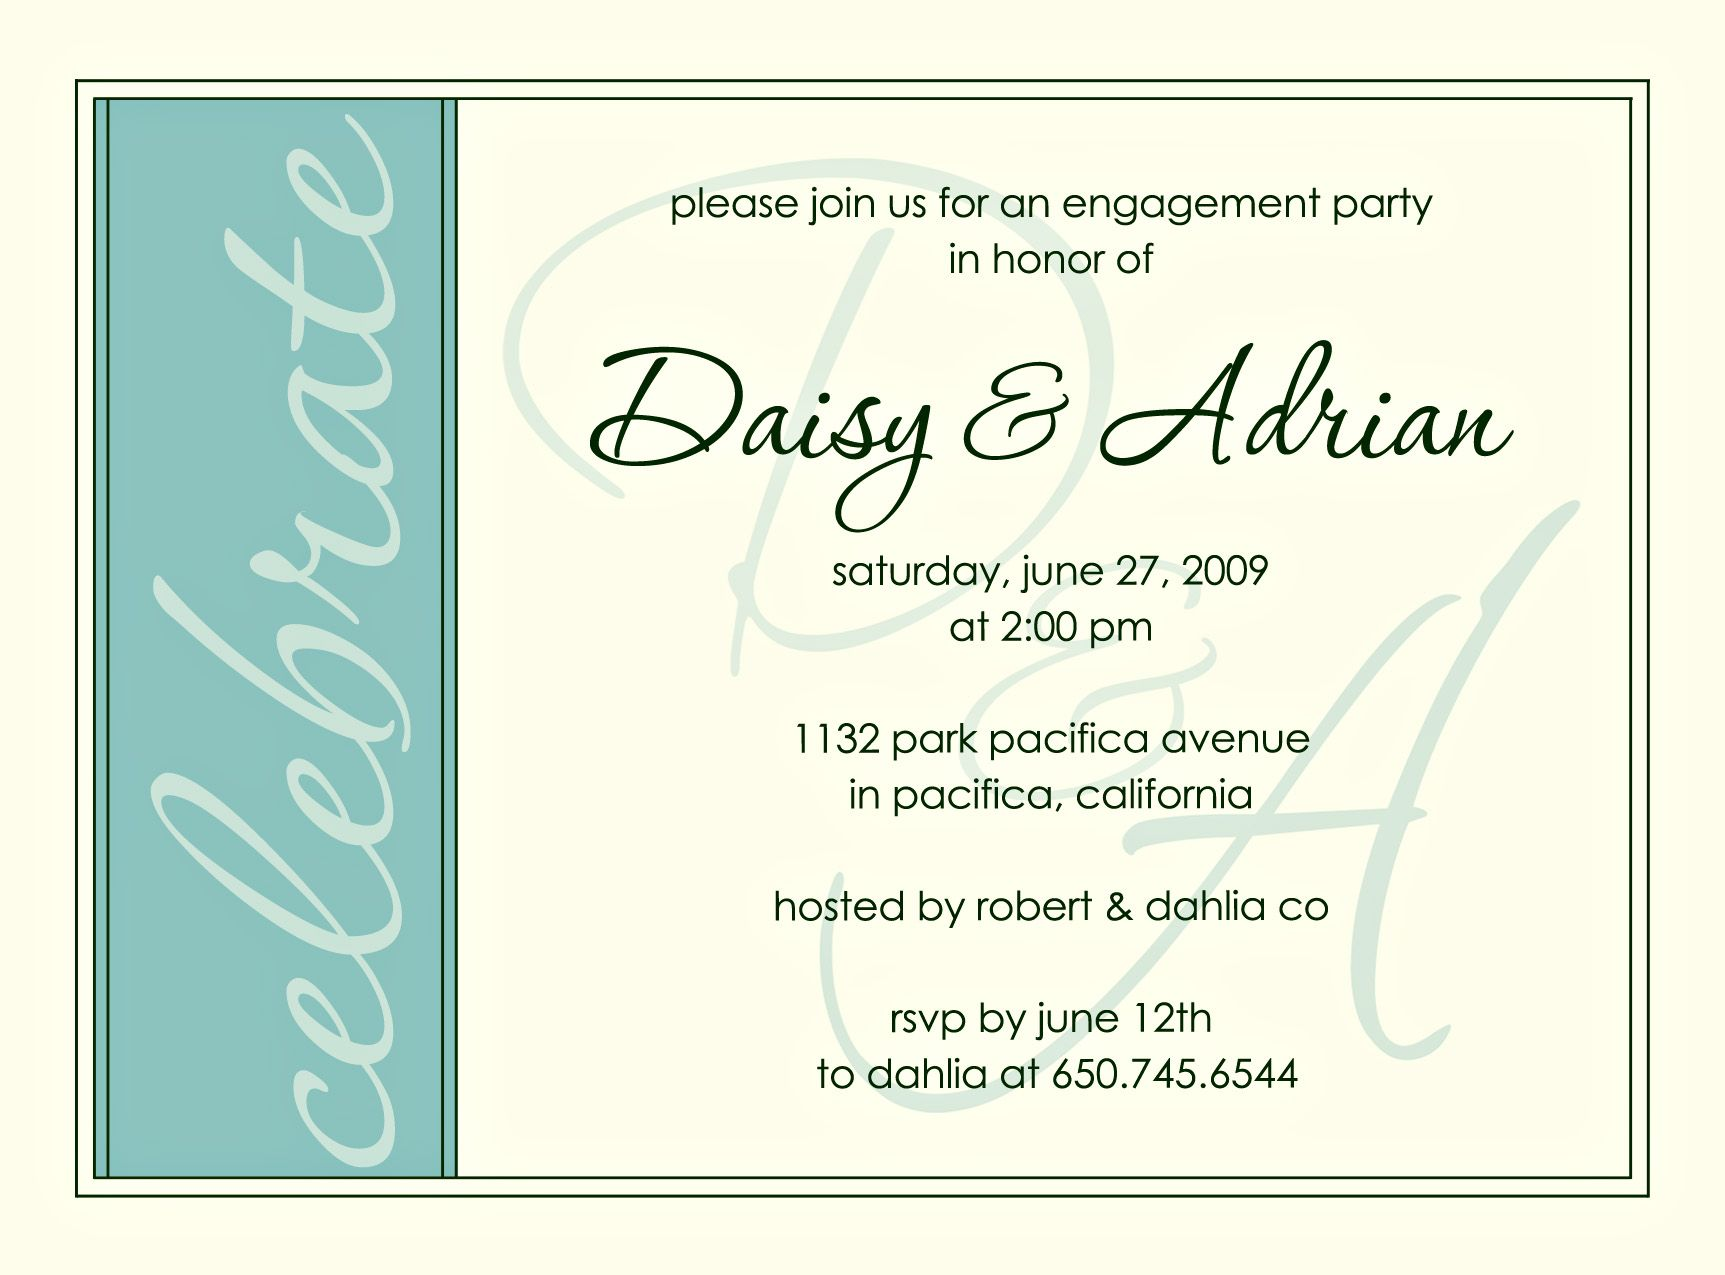 Engagement Party Invite – Party Invitation Message